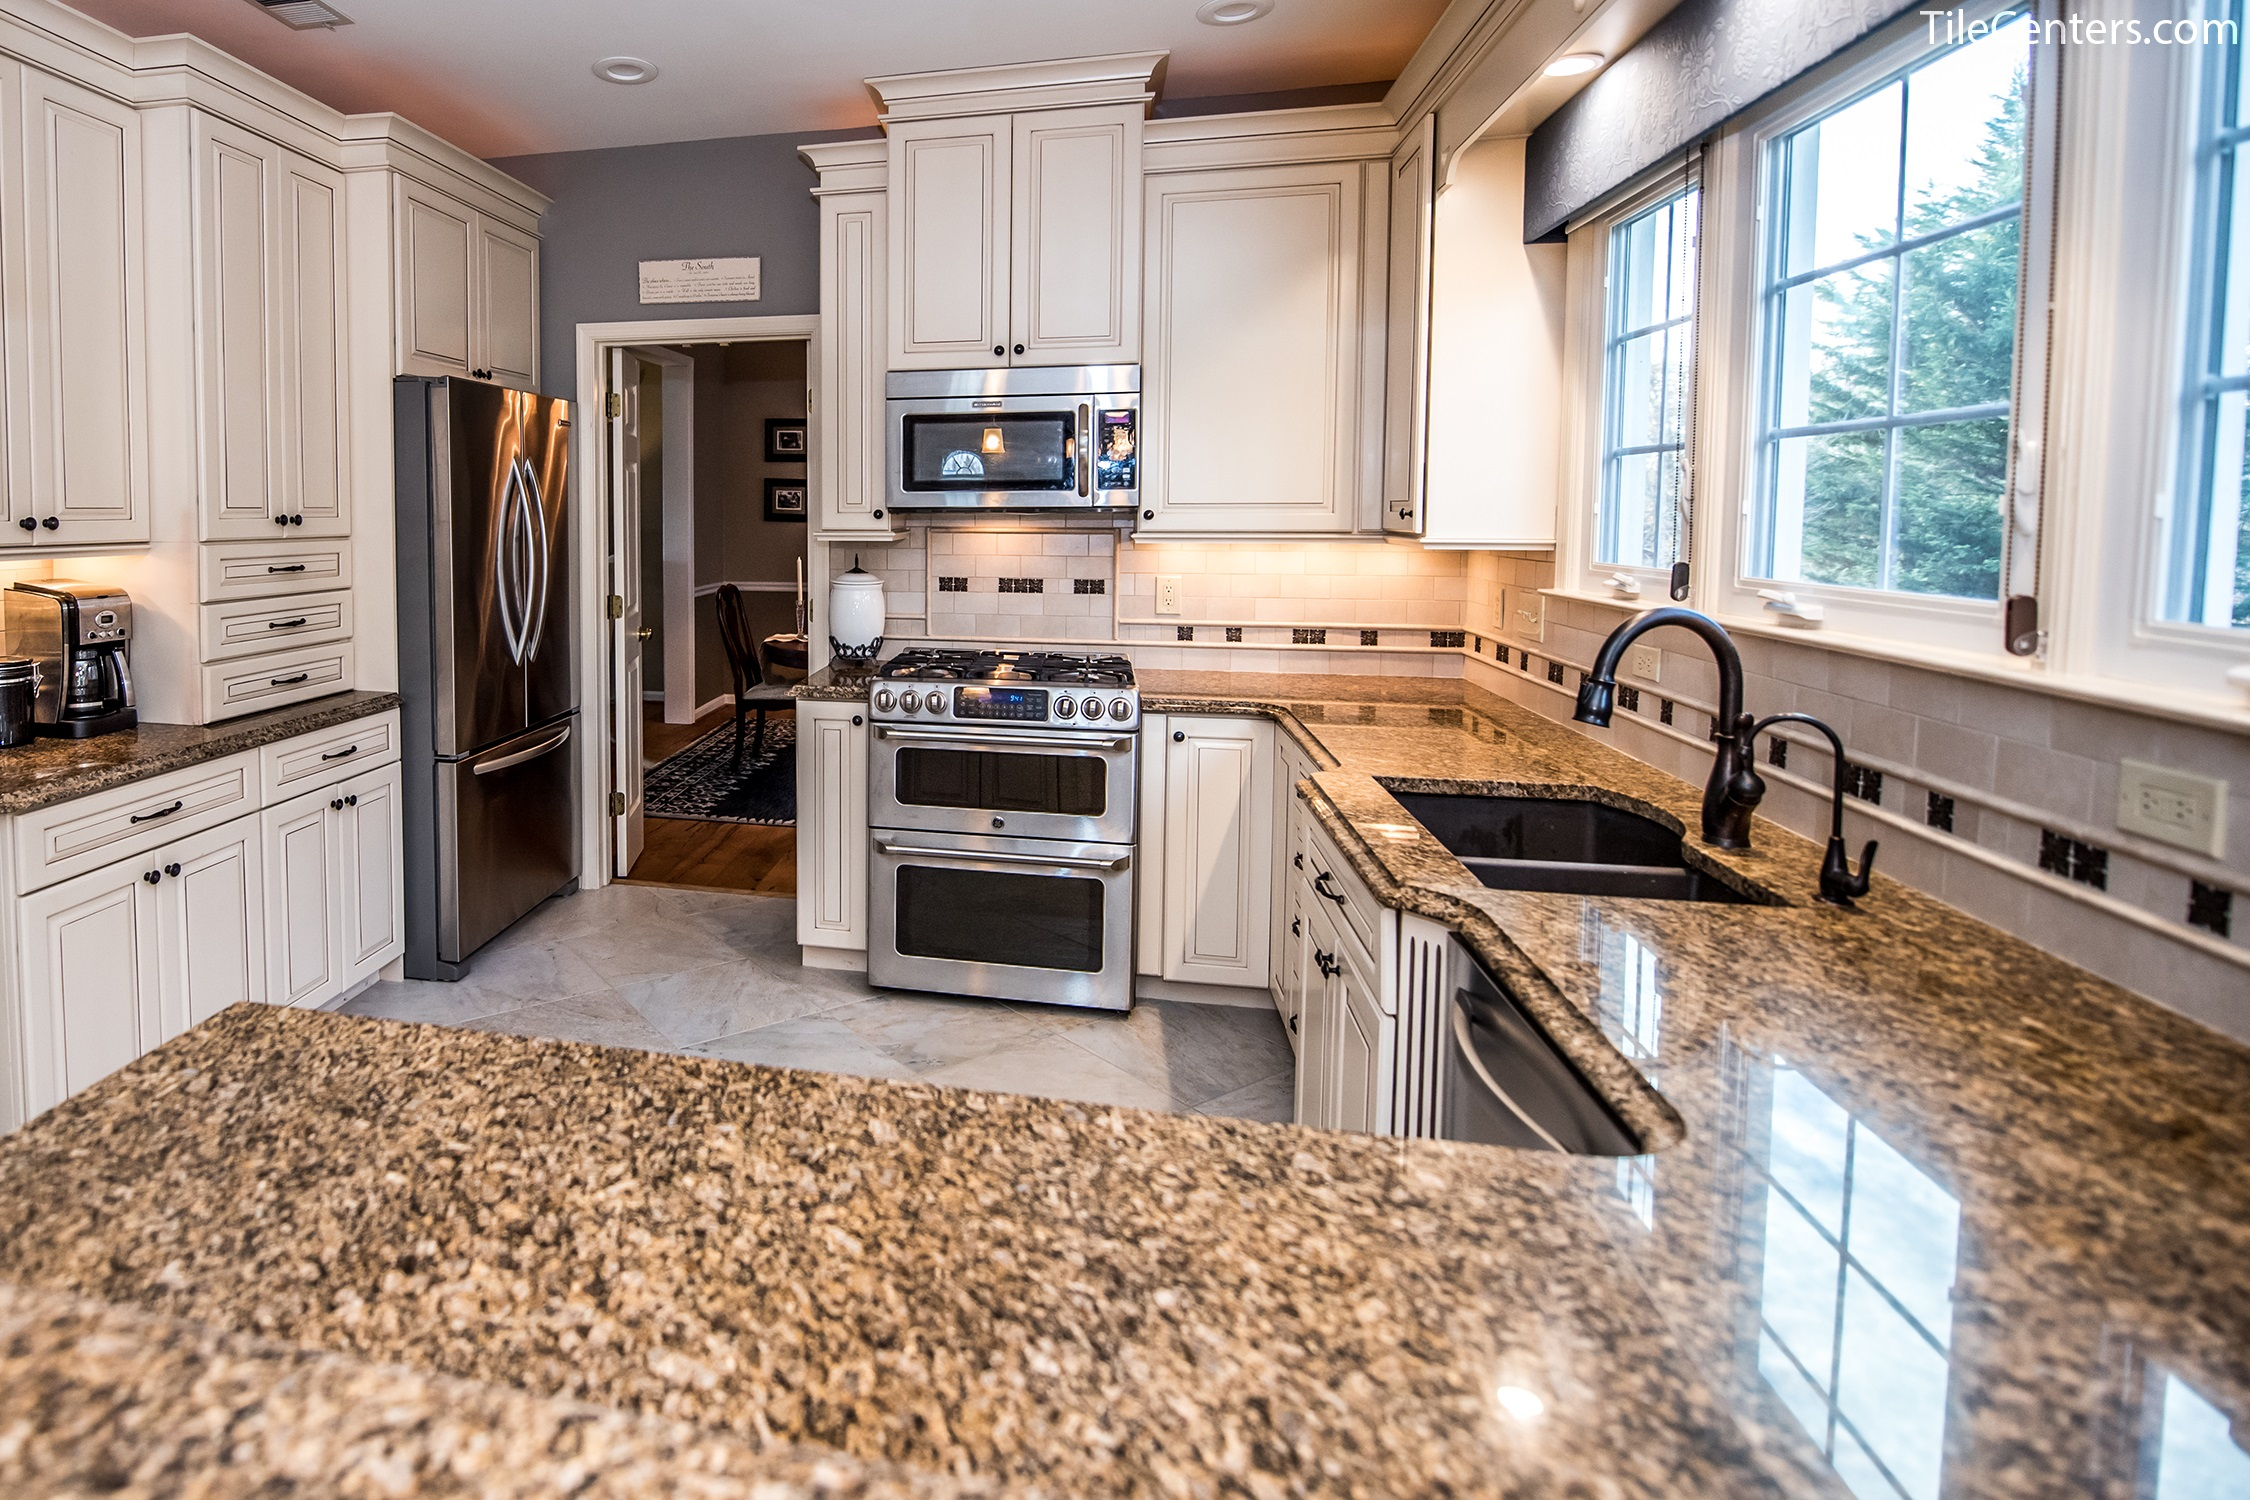 Kitchen Morning Star Drive Germantown Md 20876 Tile